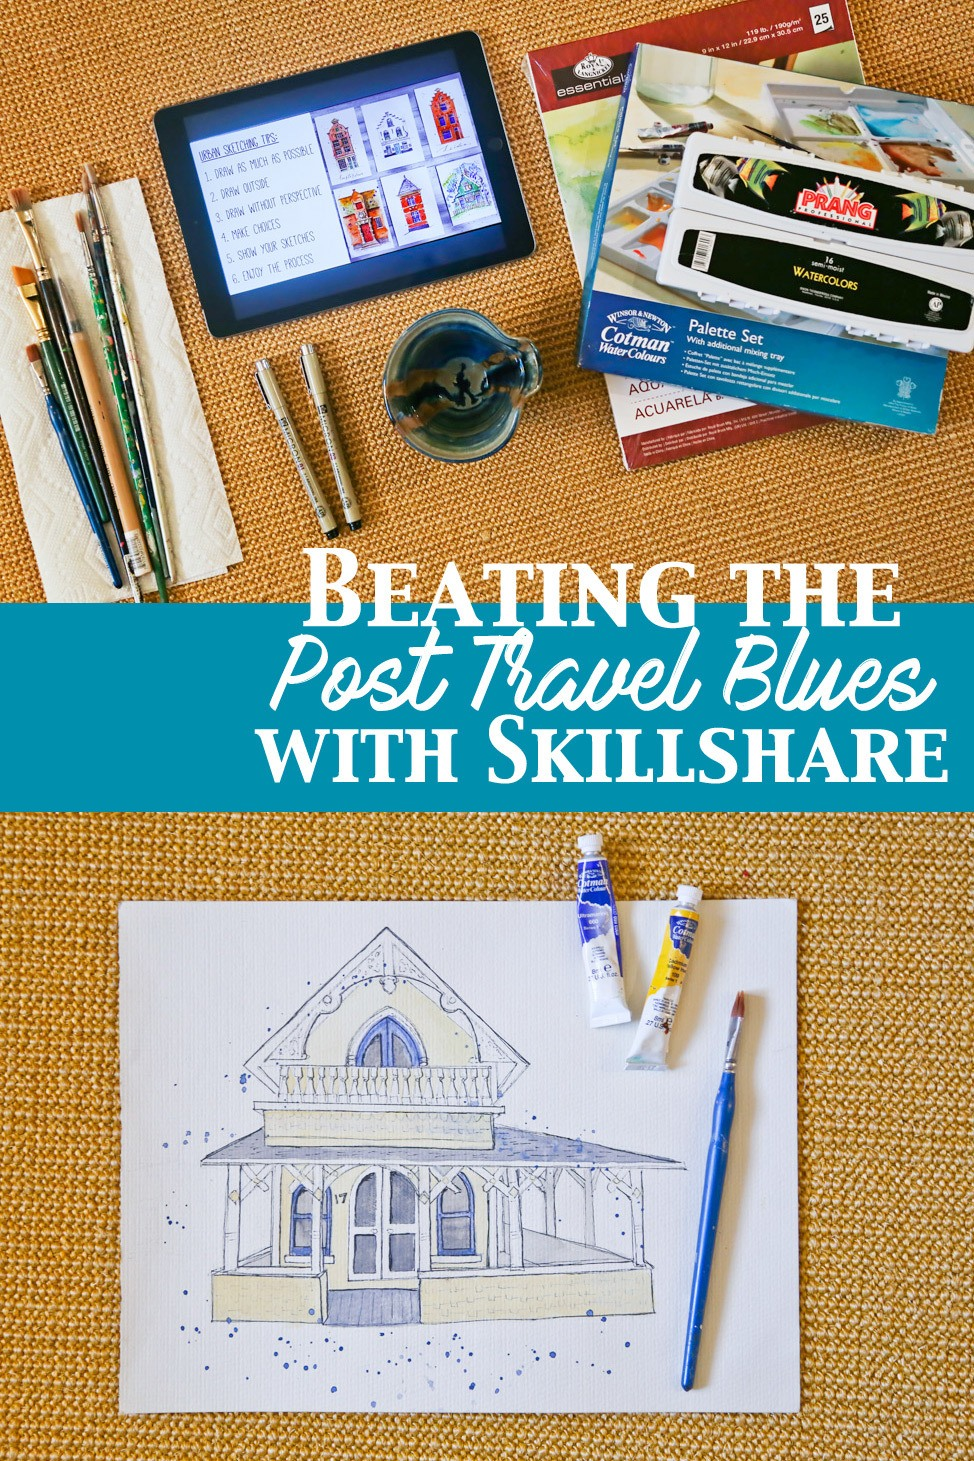 Skillshare for Travel Addicts